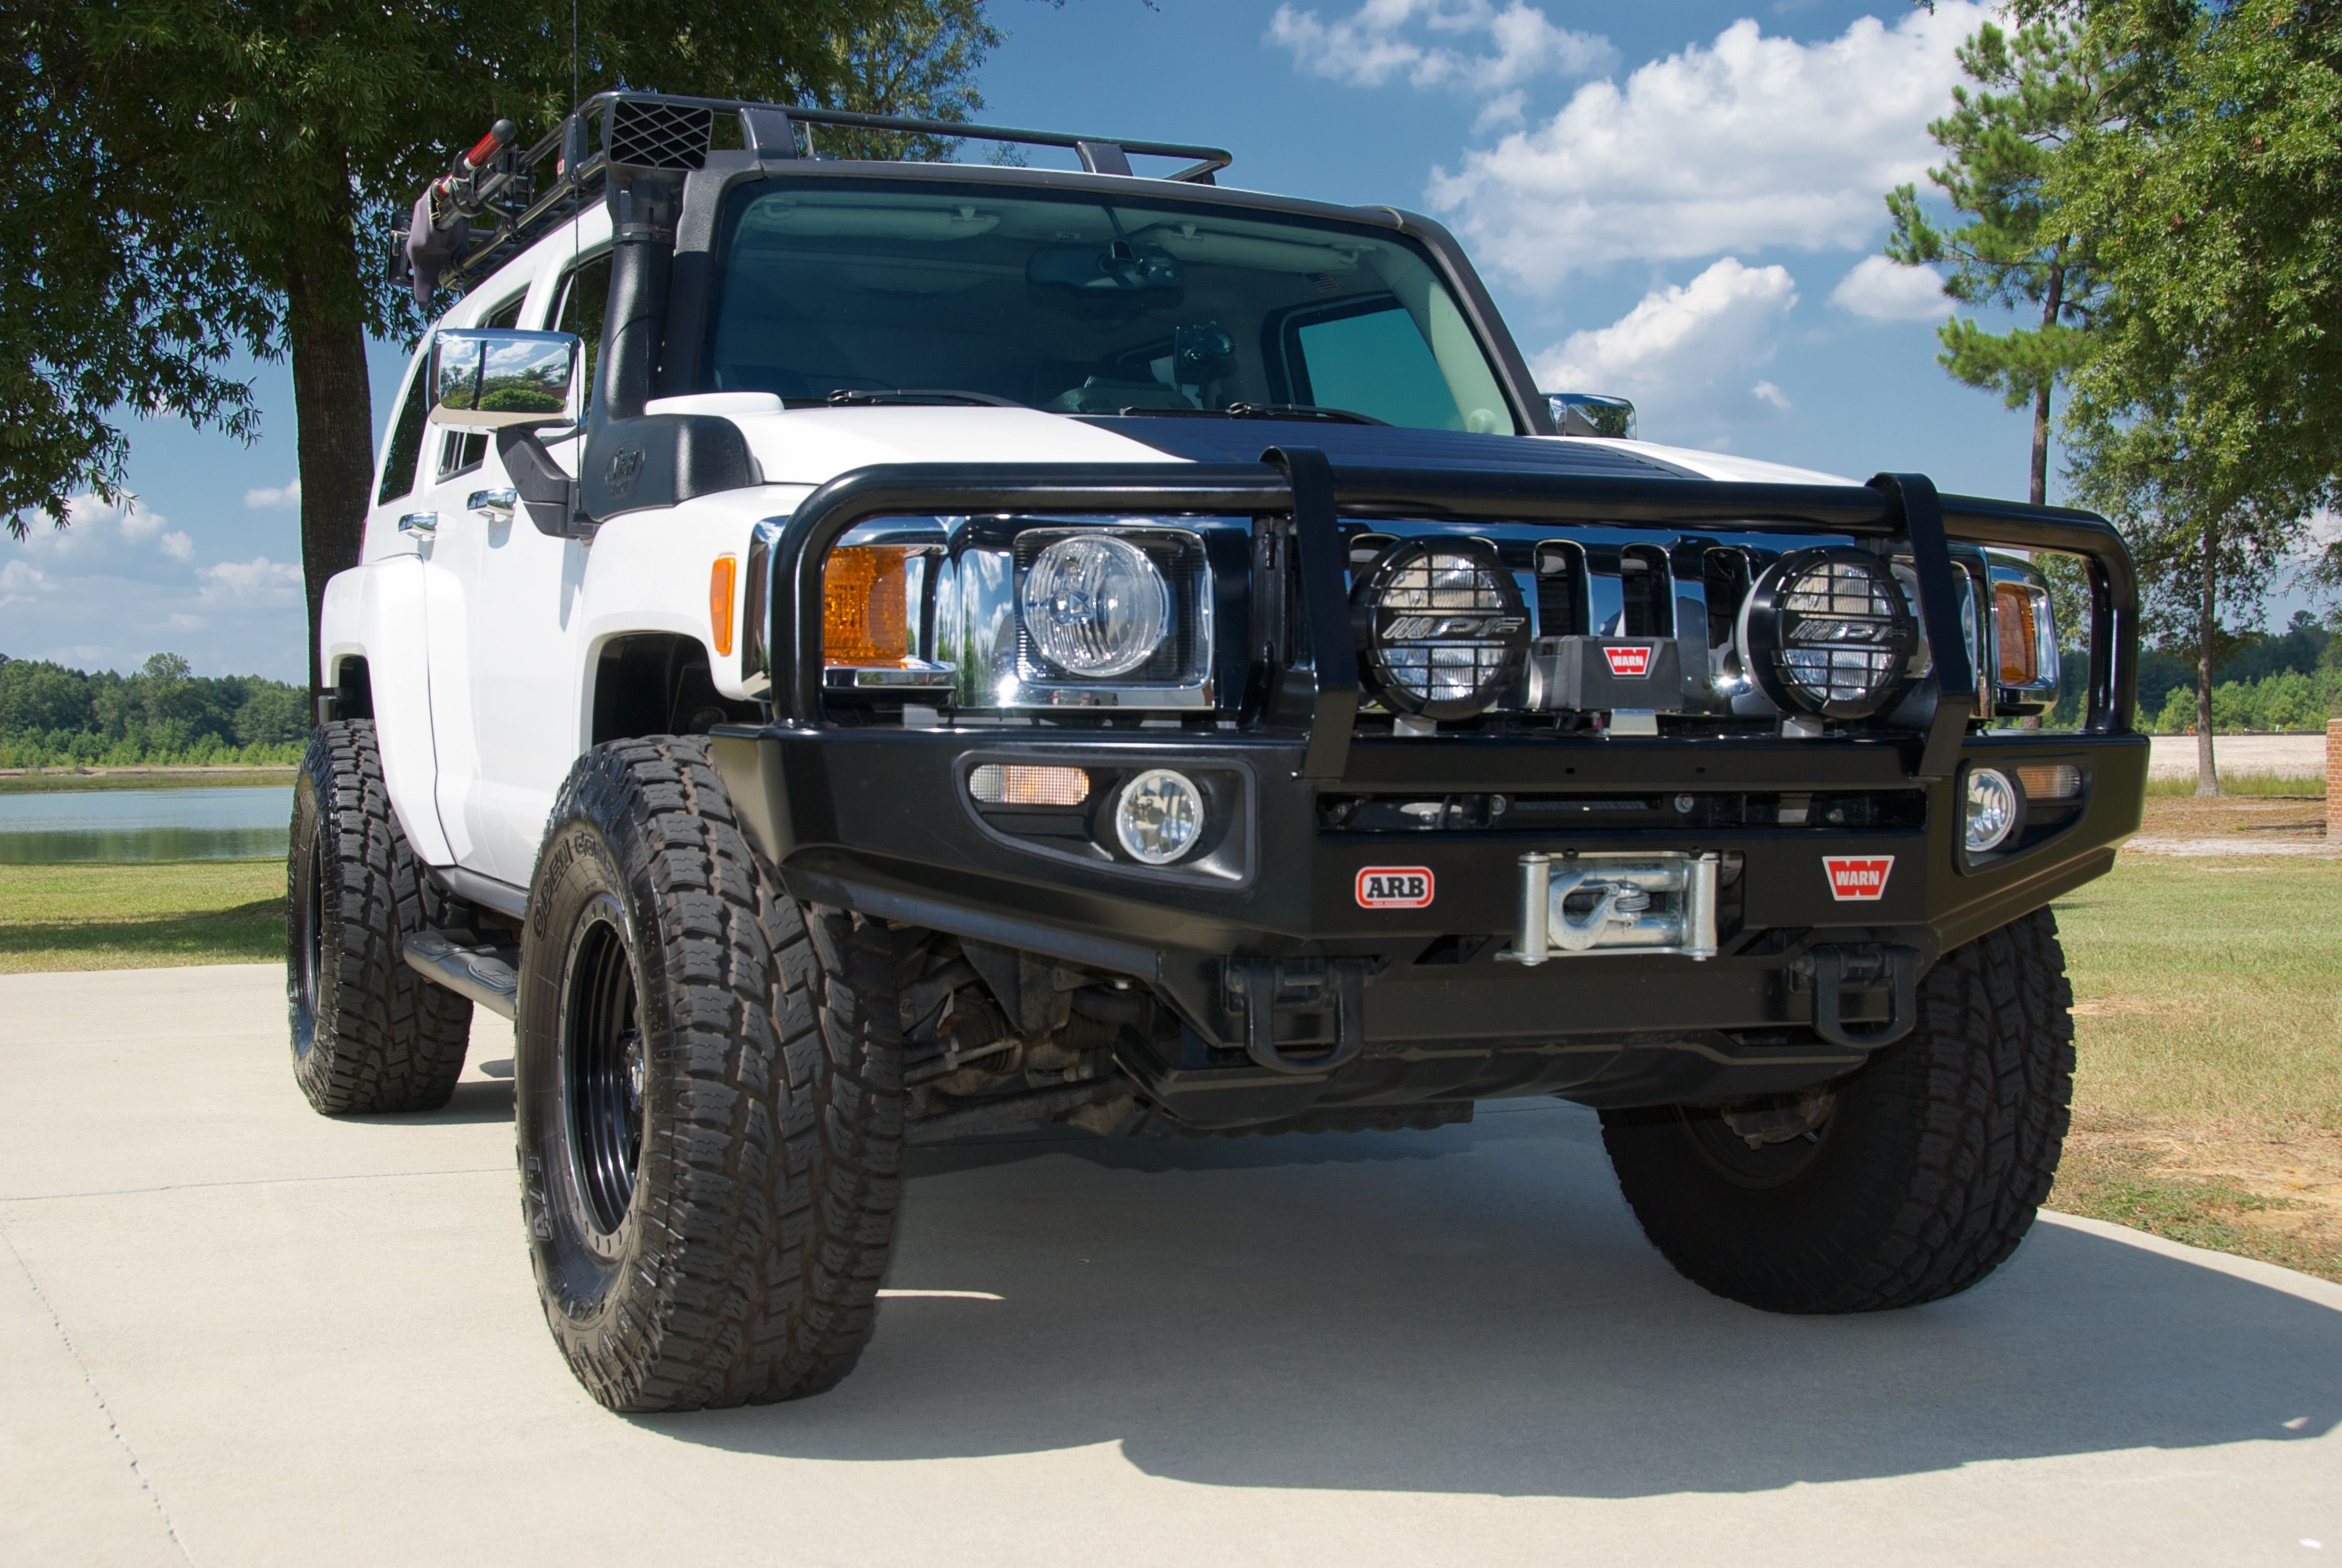 Hummer H3 Alpha Arb Bull Bar Arb Roof Rack Snorkel Warn Winch 35 Toyo Open Country A T Ii Extreme Fuel Trophy Rims Hummer Bull Bar Hummer H3